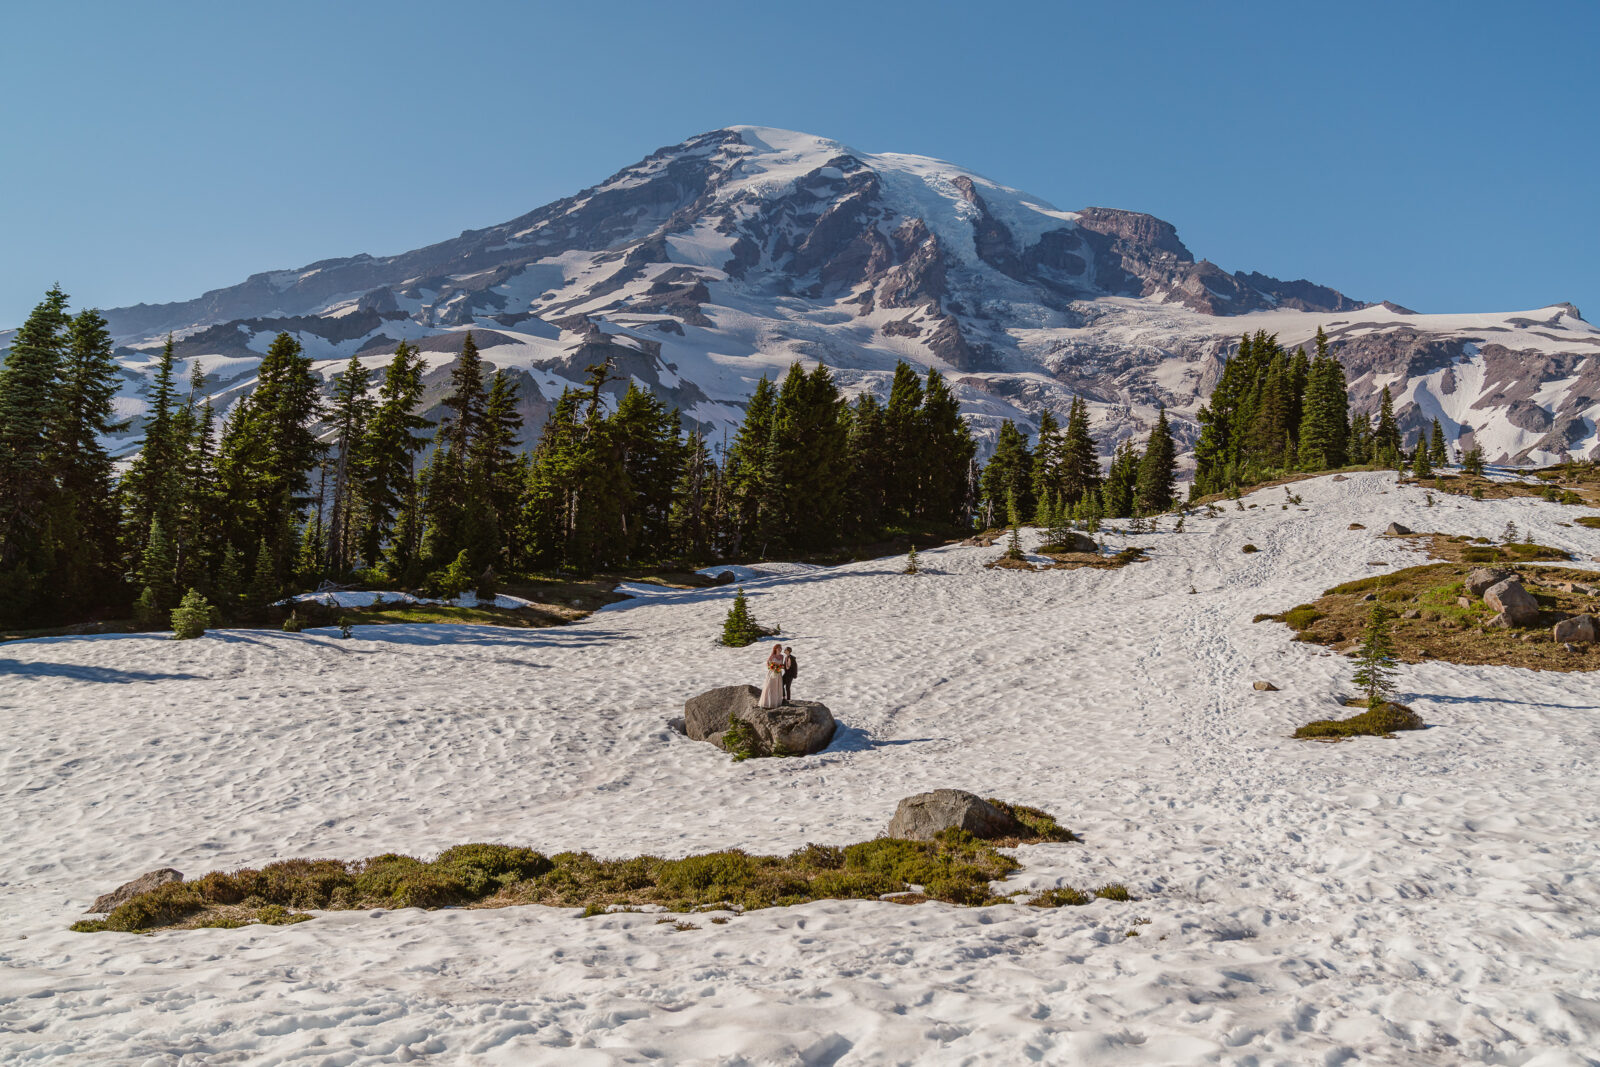 When planning an elopement at Mount Rainier National Park, plan for snow all year long.